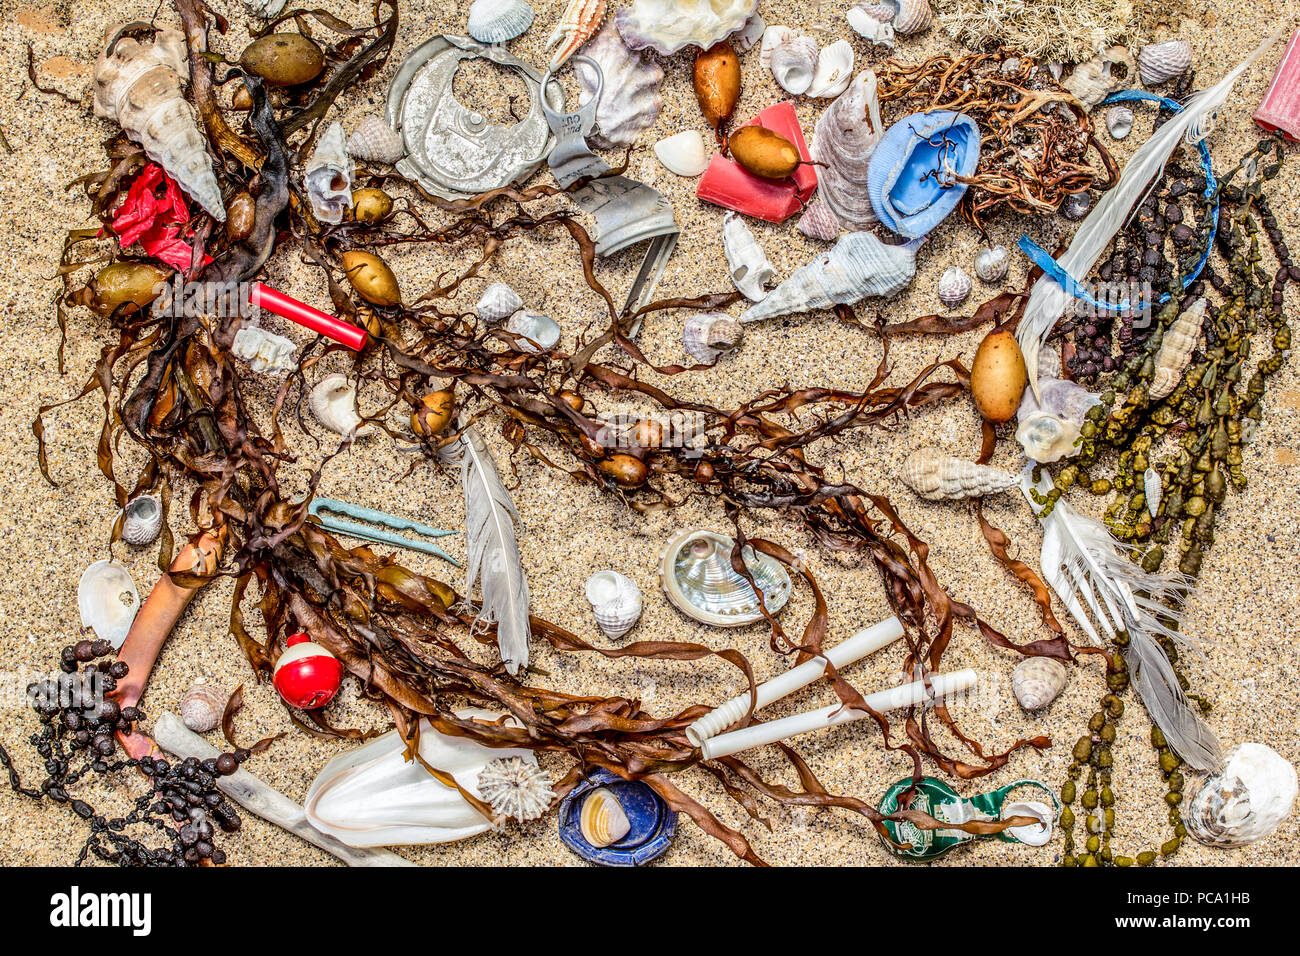 Real plastic pollution found on beach with natural beach seaweed and shells, space for text - Stock Image